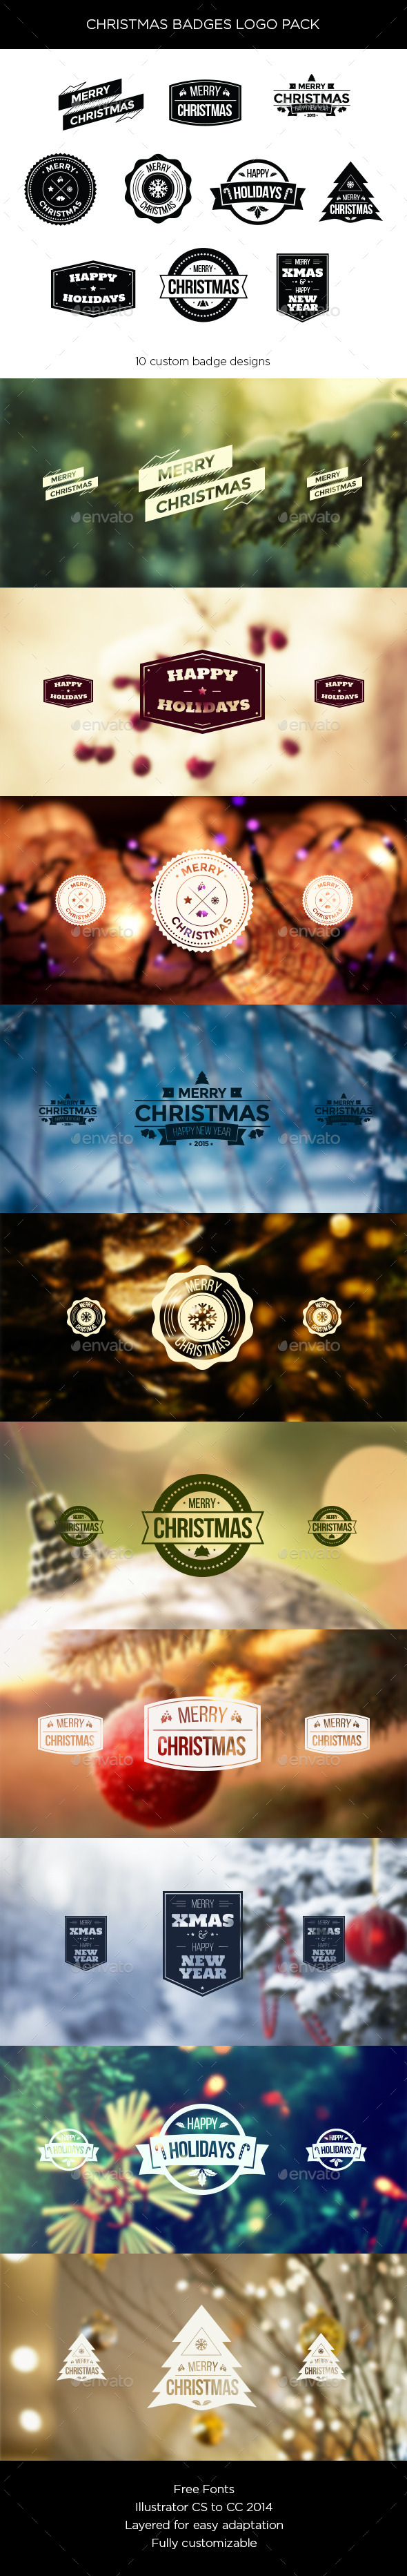 GraphicRiver Christmas Badges Logo Pack 9626932